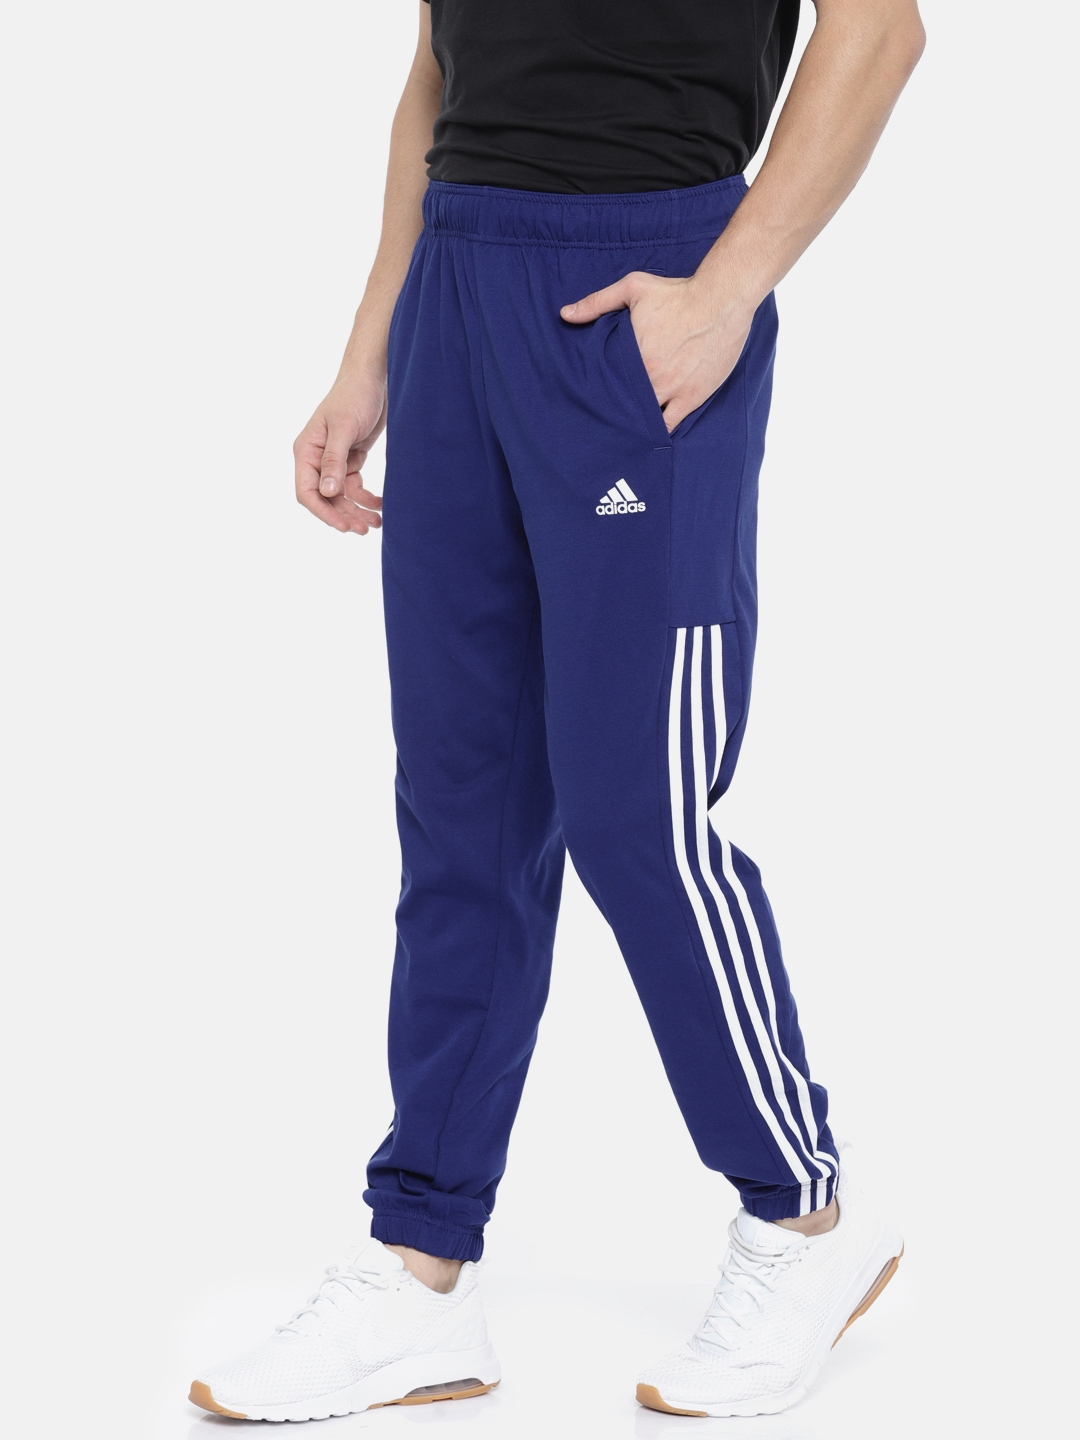 9c827e1d23c9 Buy ADIDAS Men Blue COMM M TPANTSJ Joggers - Track Pants for Men ...